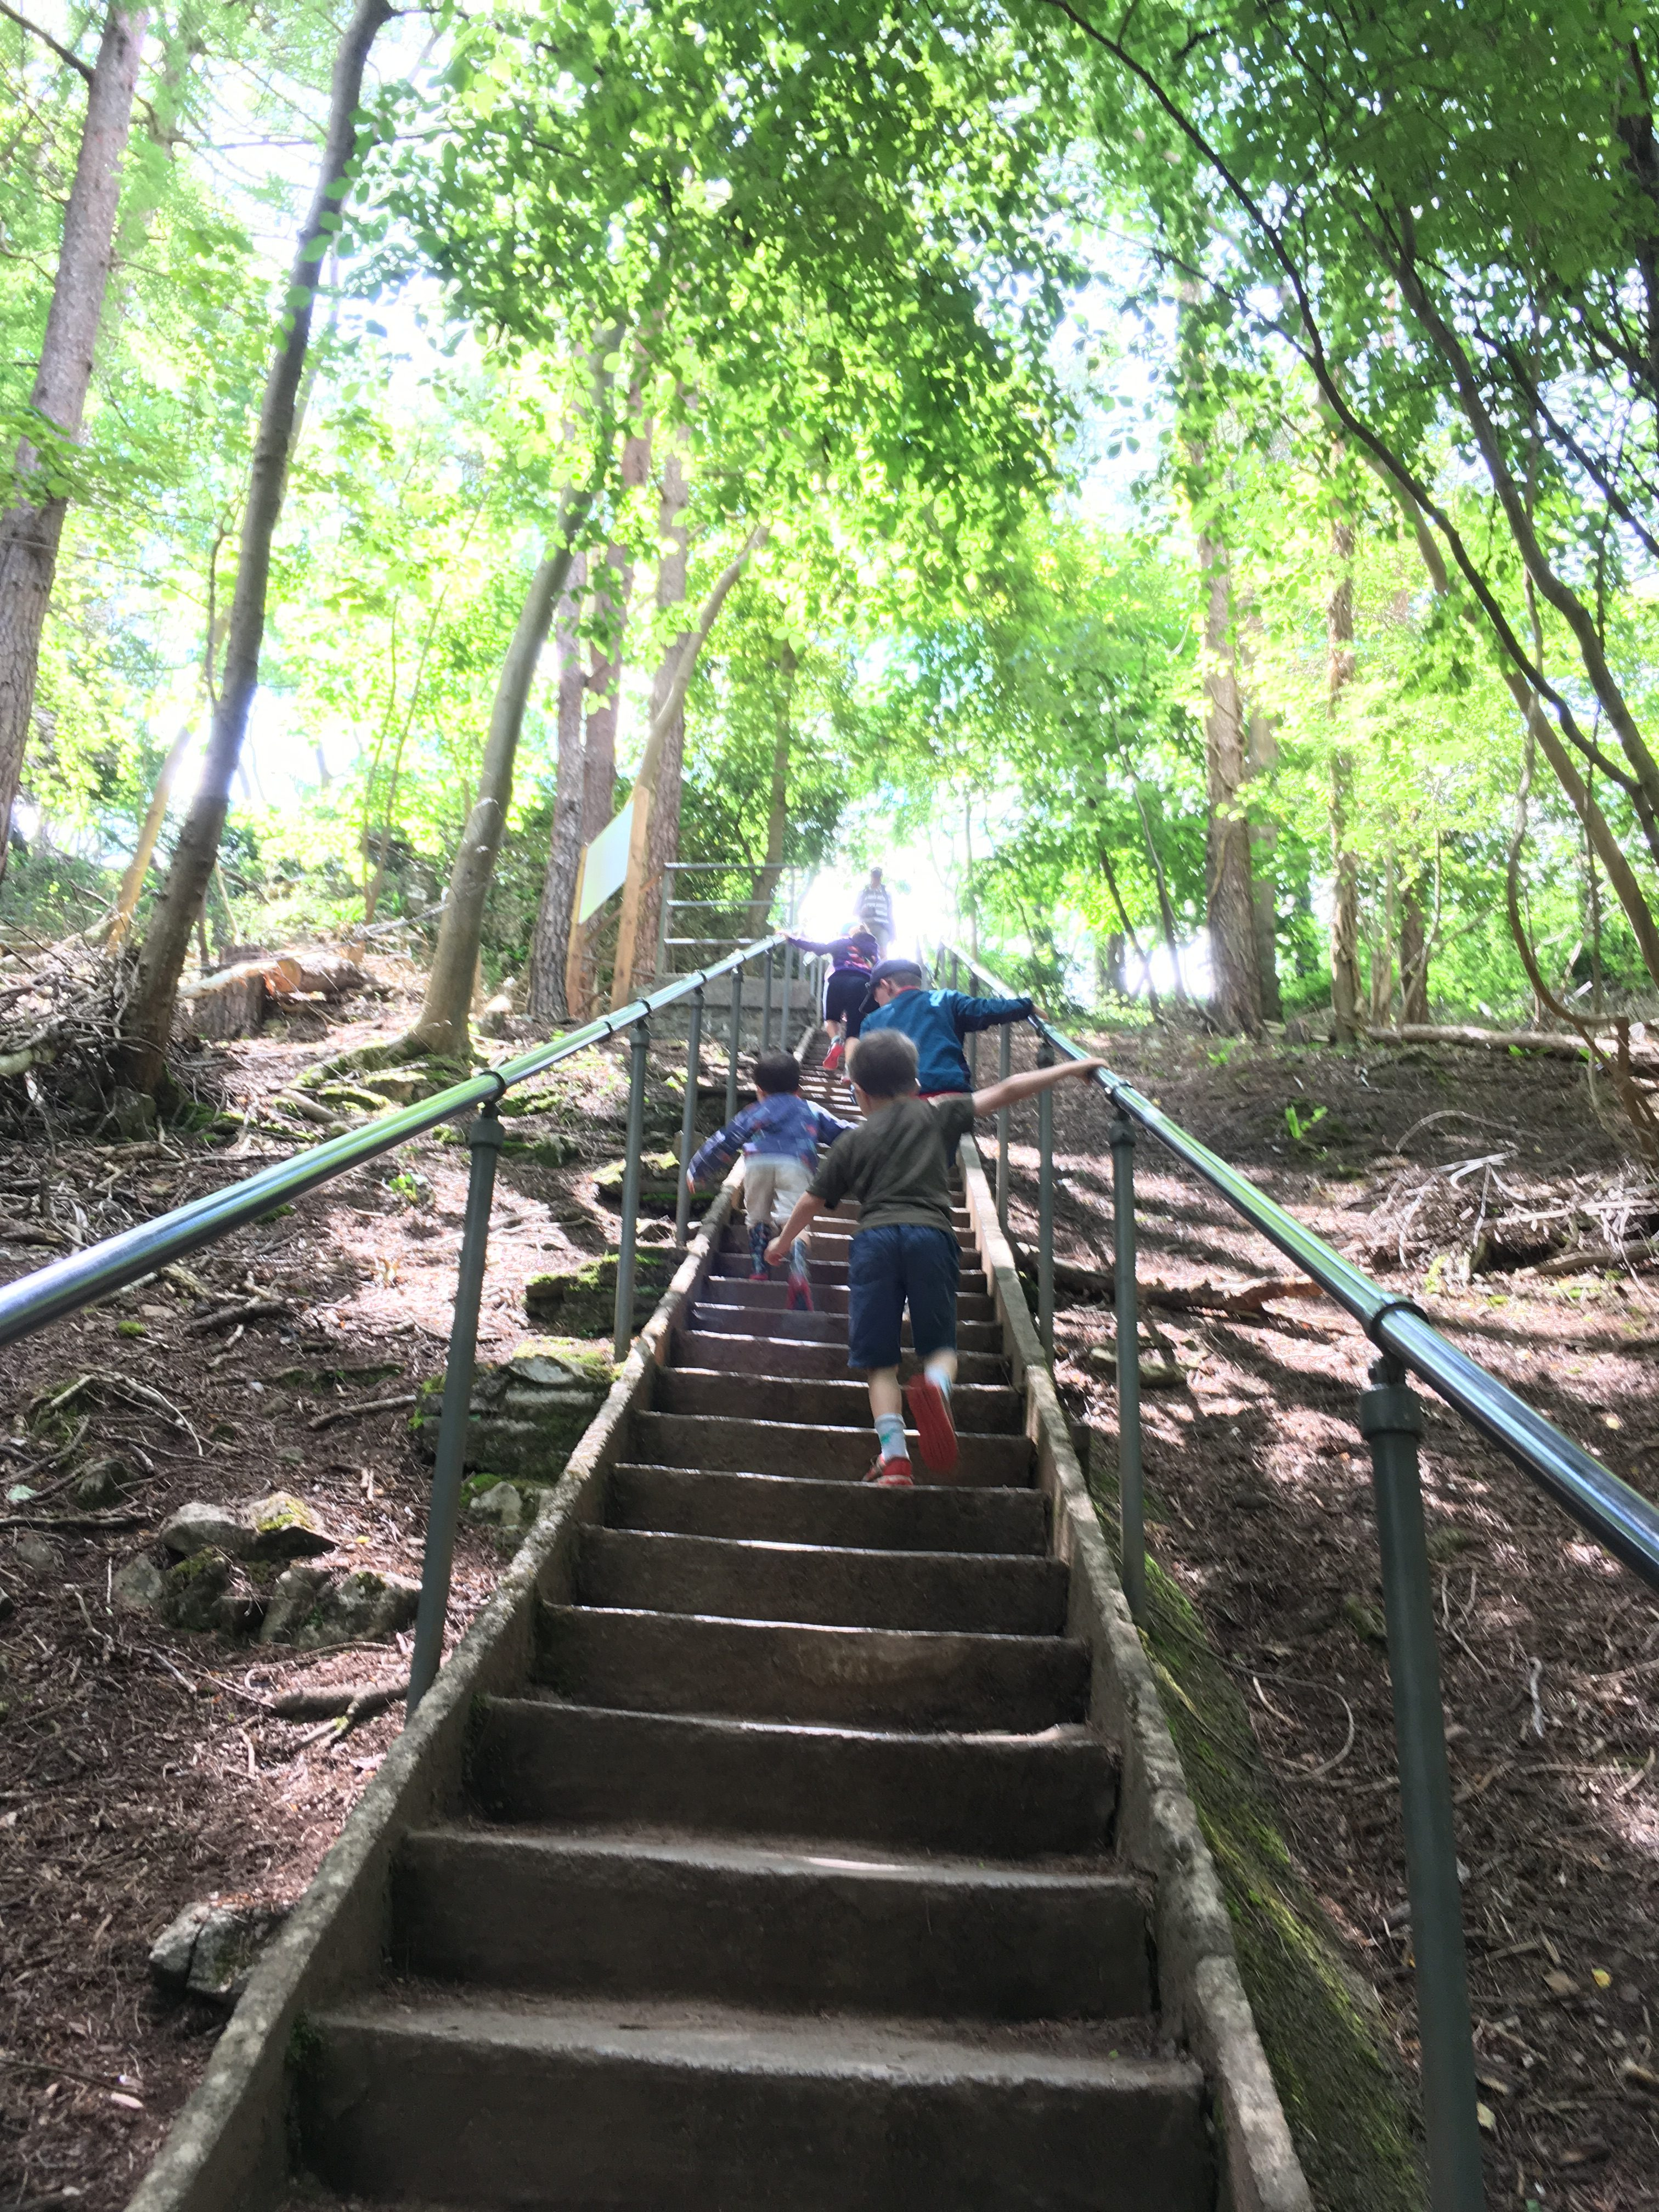 Racing up the steps of Jacob's Ladder at Cheddar Gorge, Somerset